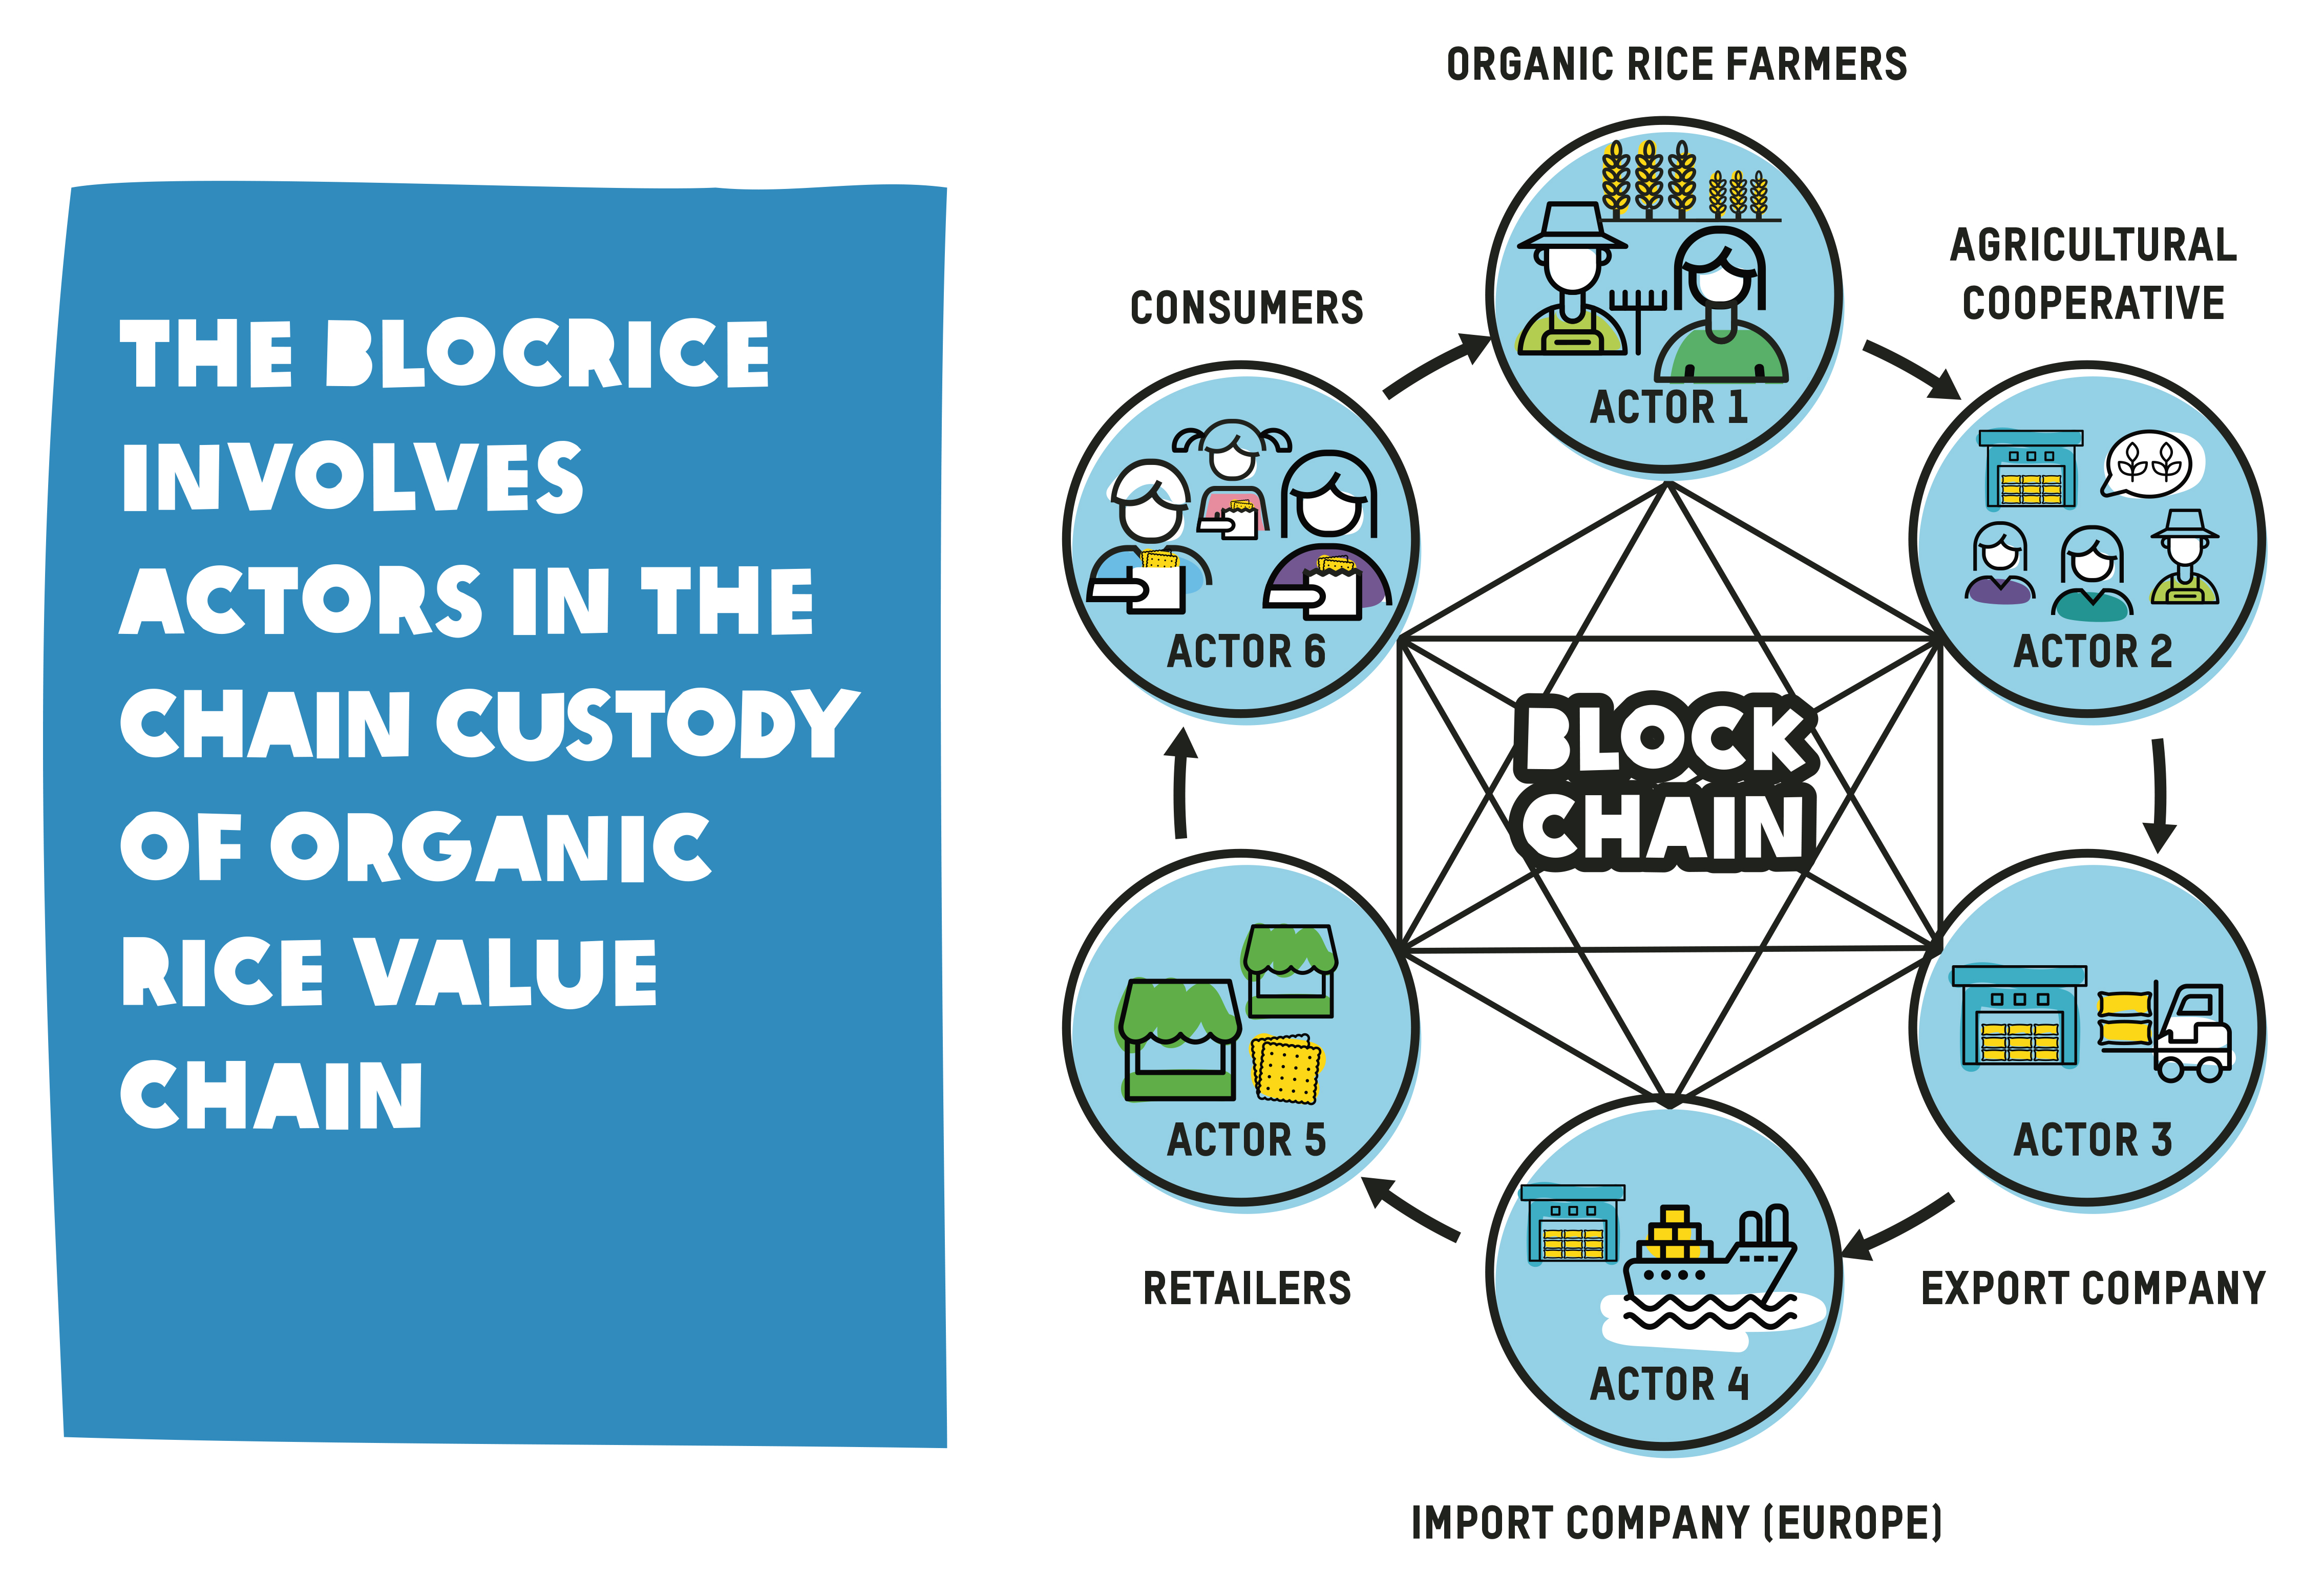 BlocRice involes active in chain custody of organic rice value chain